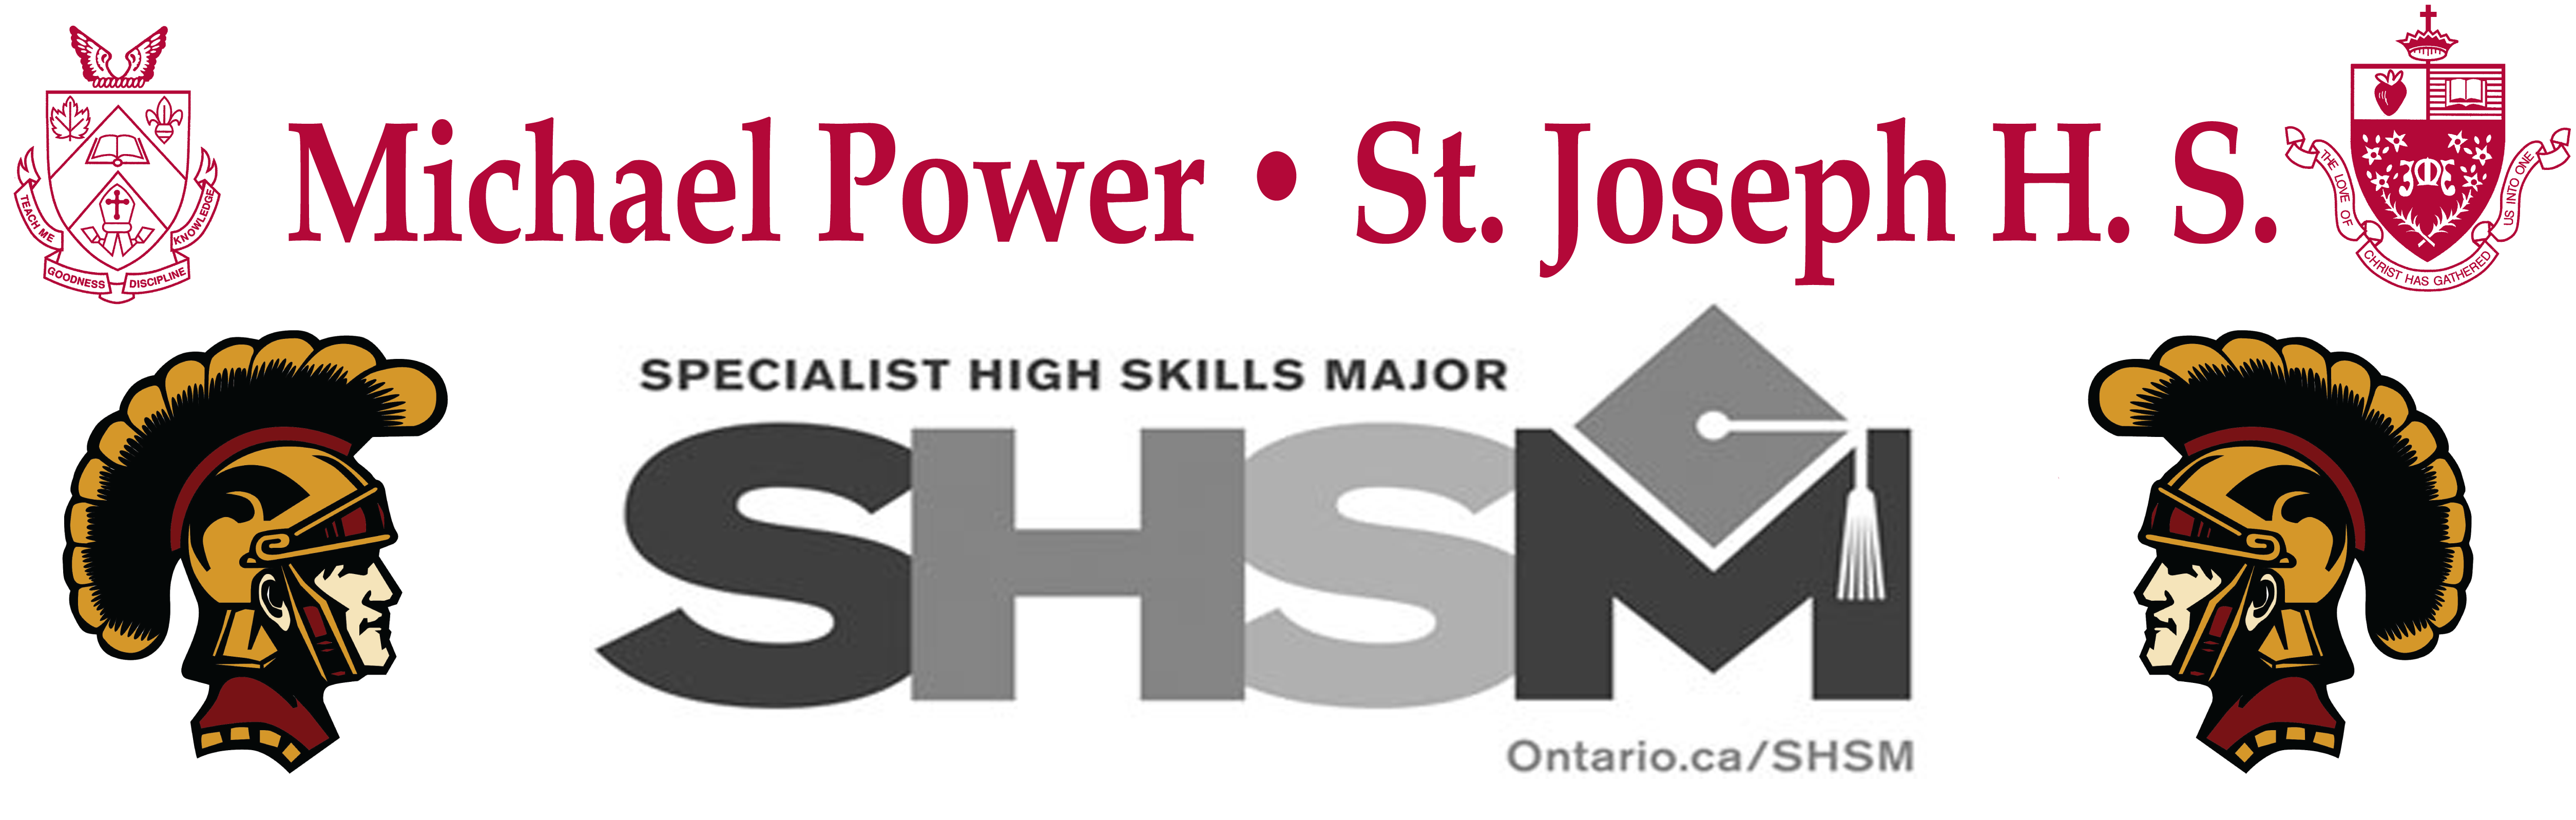 Michael Power St. Joseph Specialist High Skills Major graphic